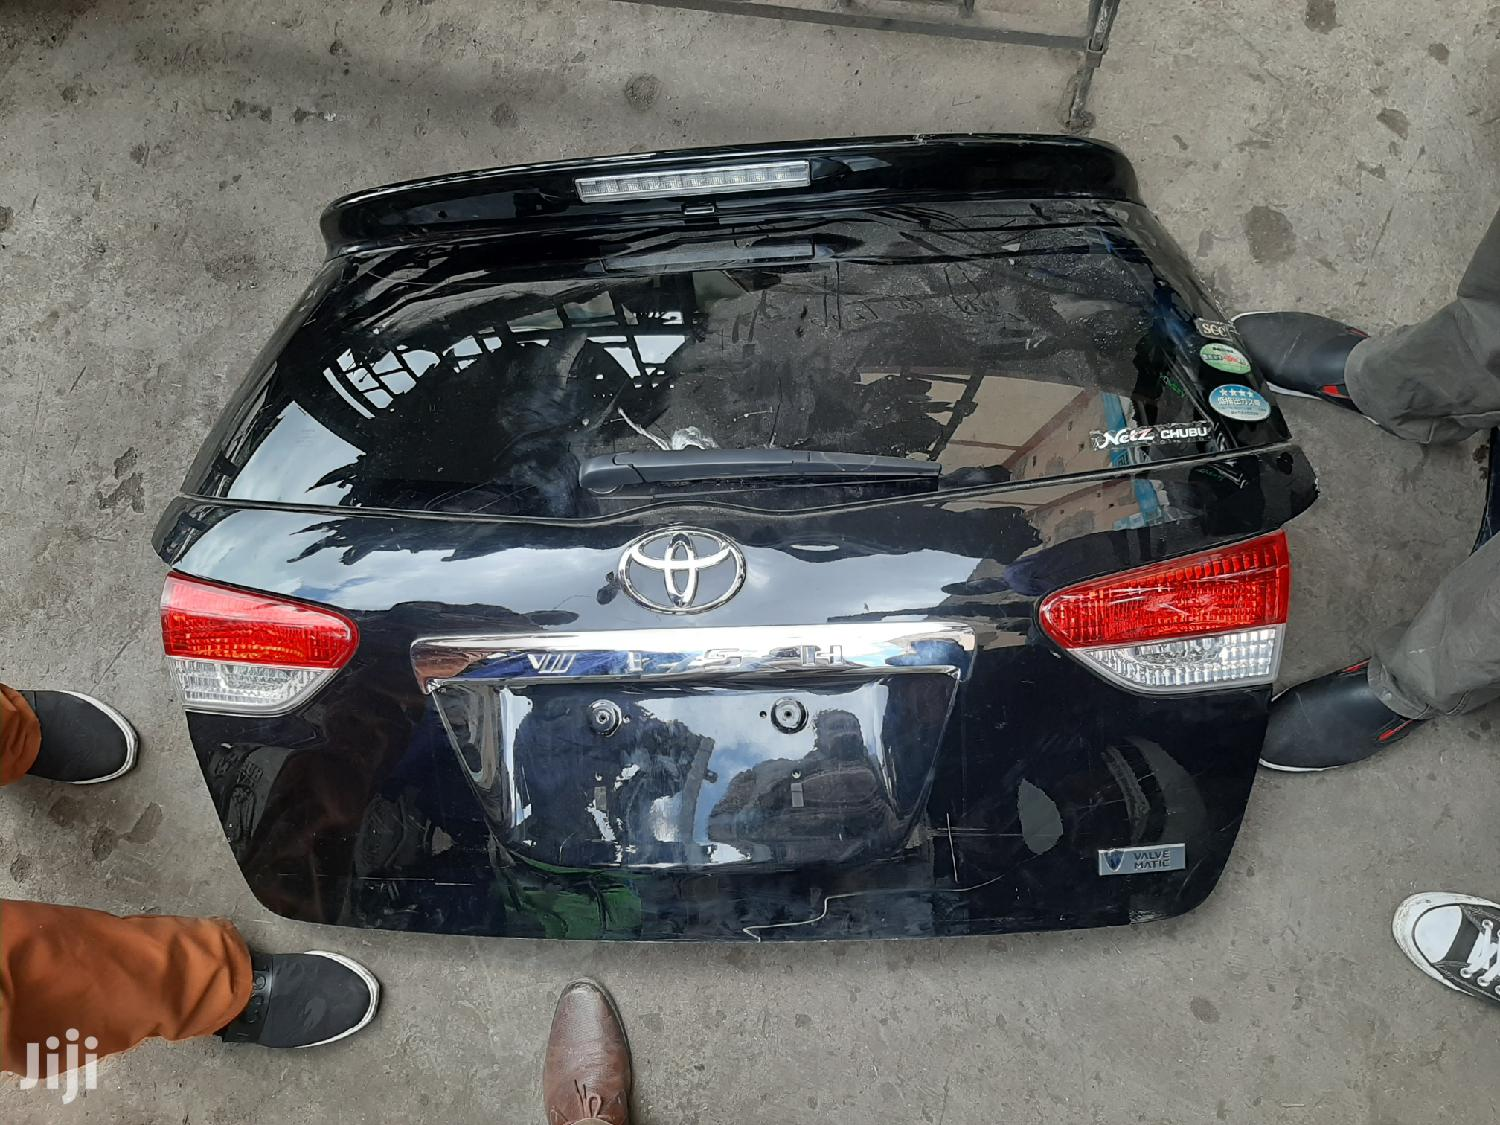 Clean Toyota Wish 2010 Boot Auto Car Body Parts | Vehicle Parts & Accessories for sale in Nairobi Central, Nairobi, Kenya